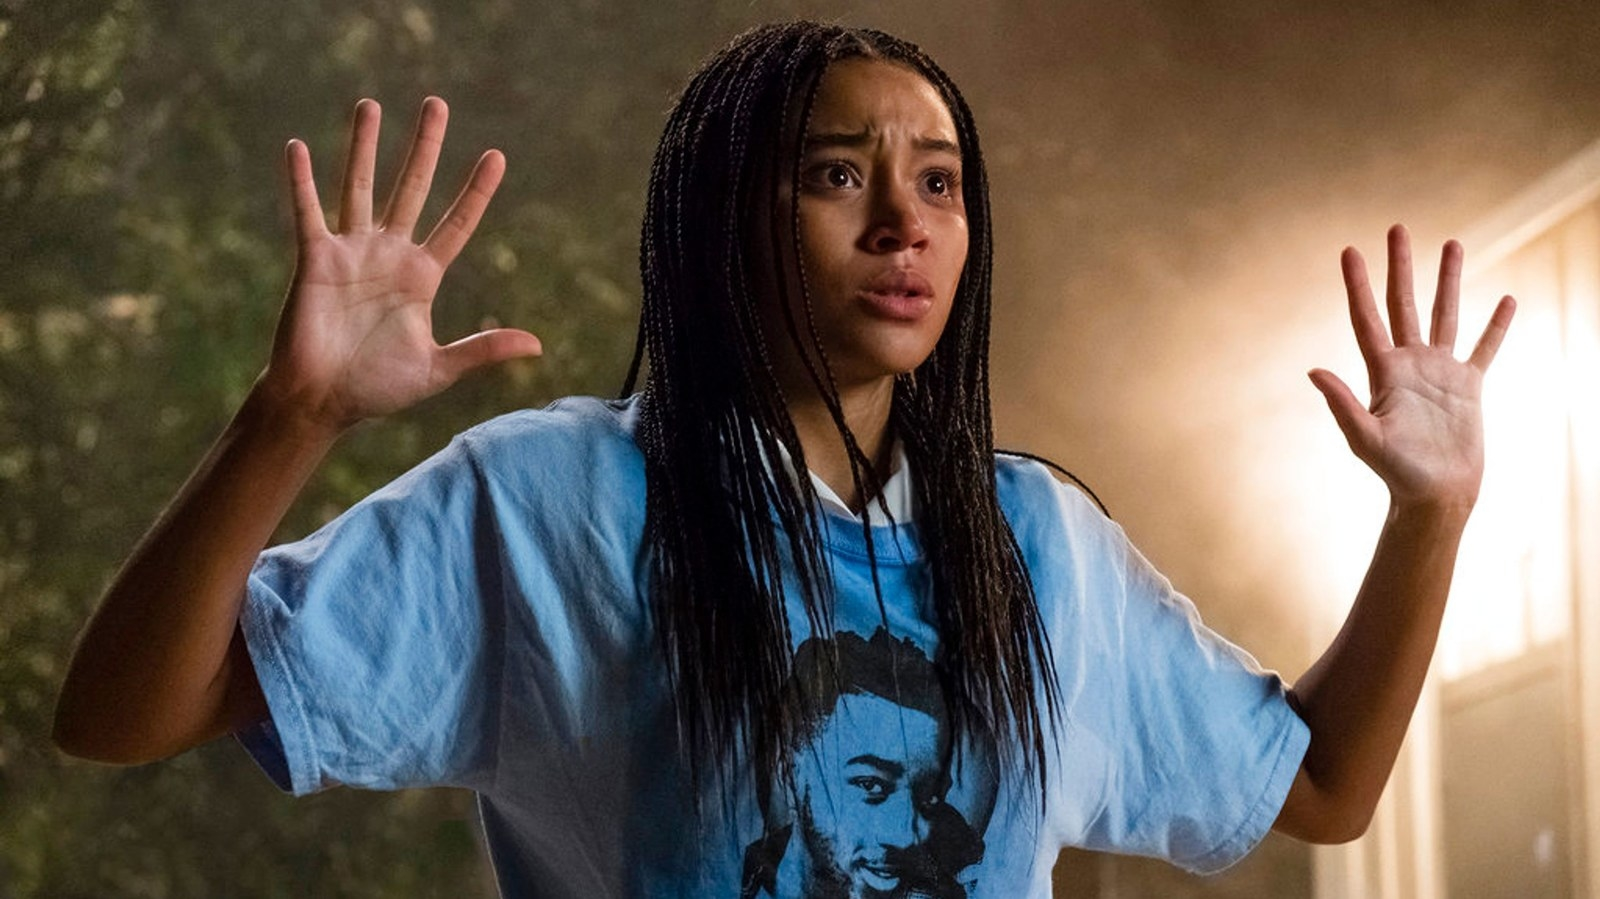 Starr facing the police with her hands up in The Hate U Give.